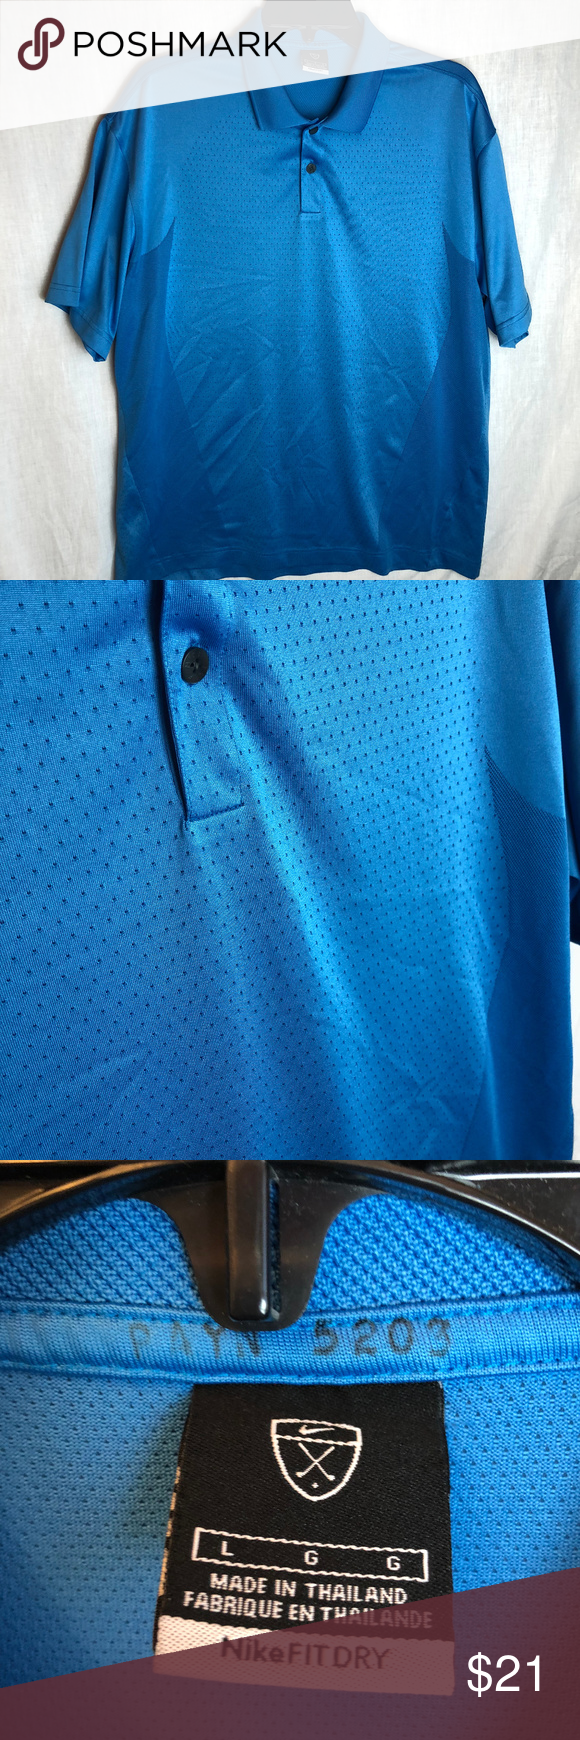 8512a6bd9f0d1e Nike Golf Fit Dry Body Mapping Polo Shirt Large This is for a Nike Golf Fit